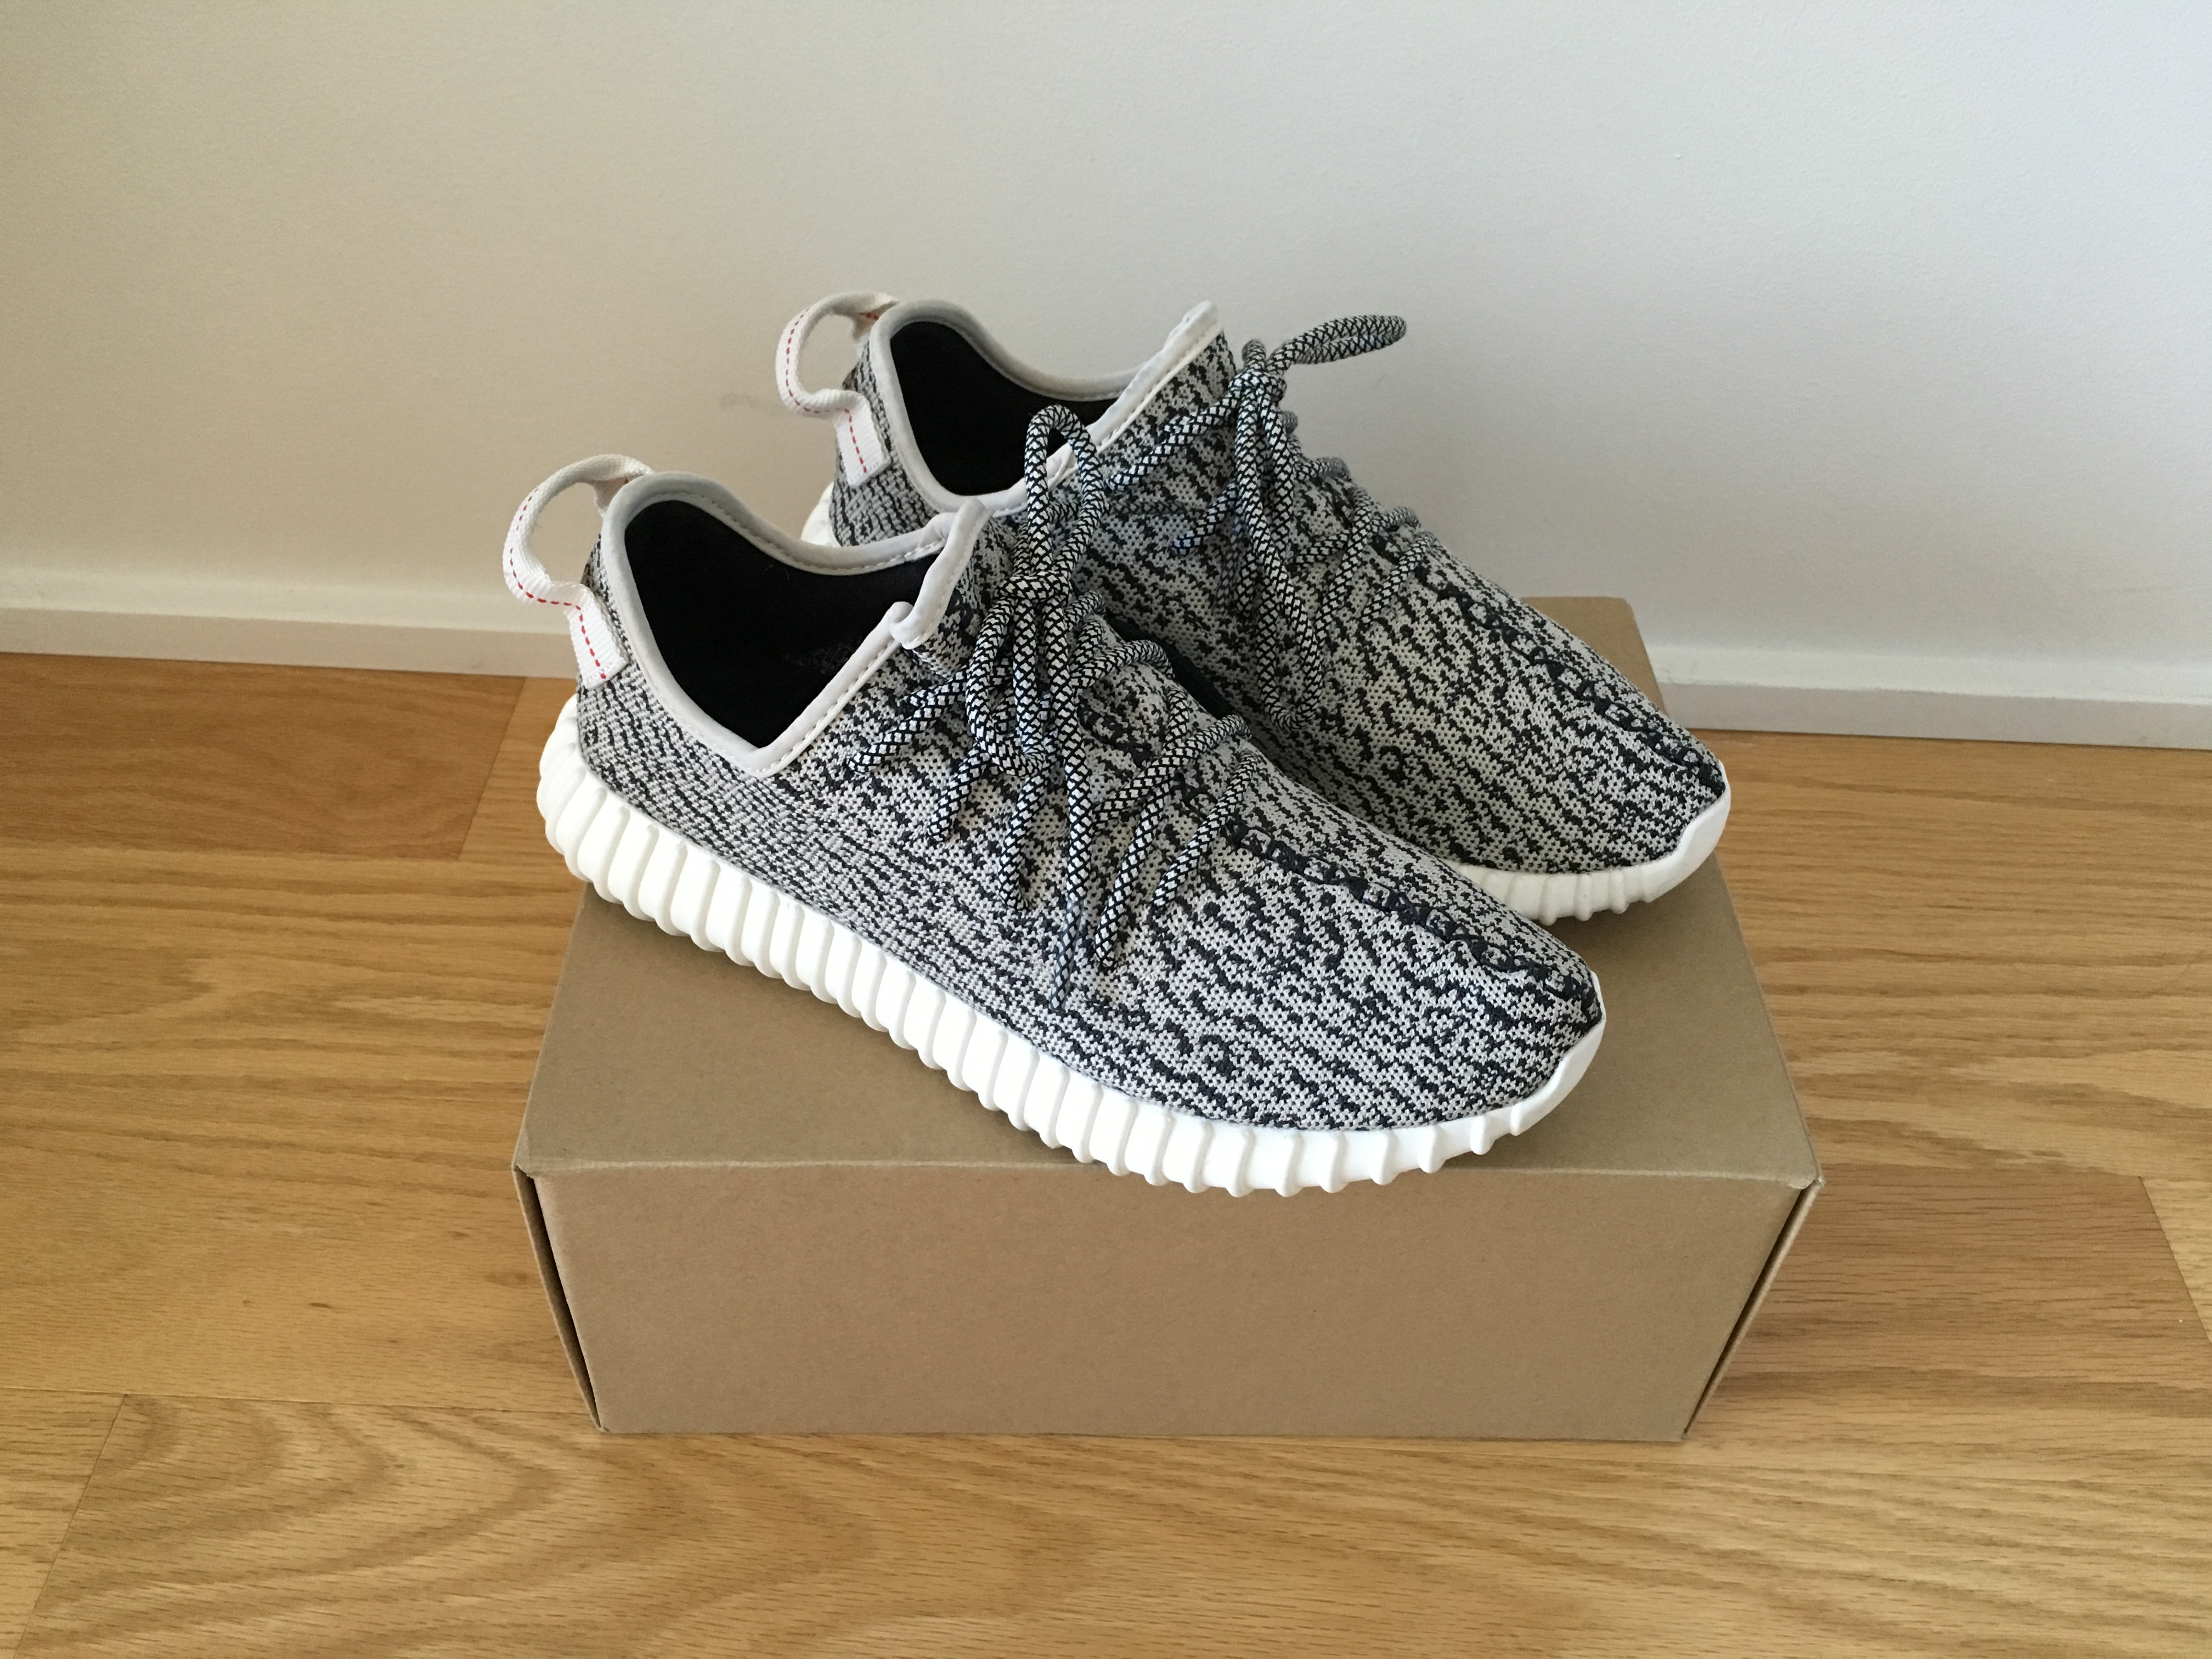 10b4812c7646c Adidas Kanye West Yeezy Boost 350 - Turtle Dove Size 8 - for Sale ...